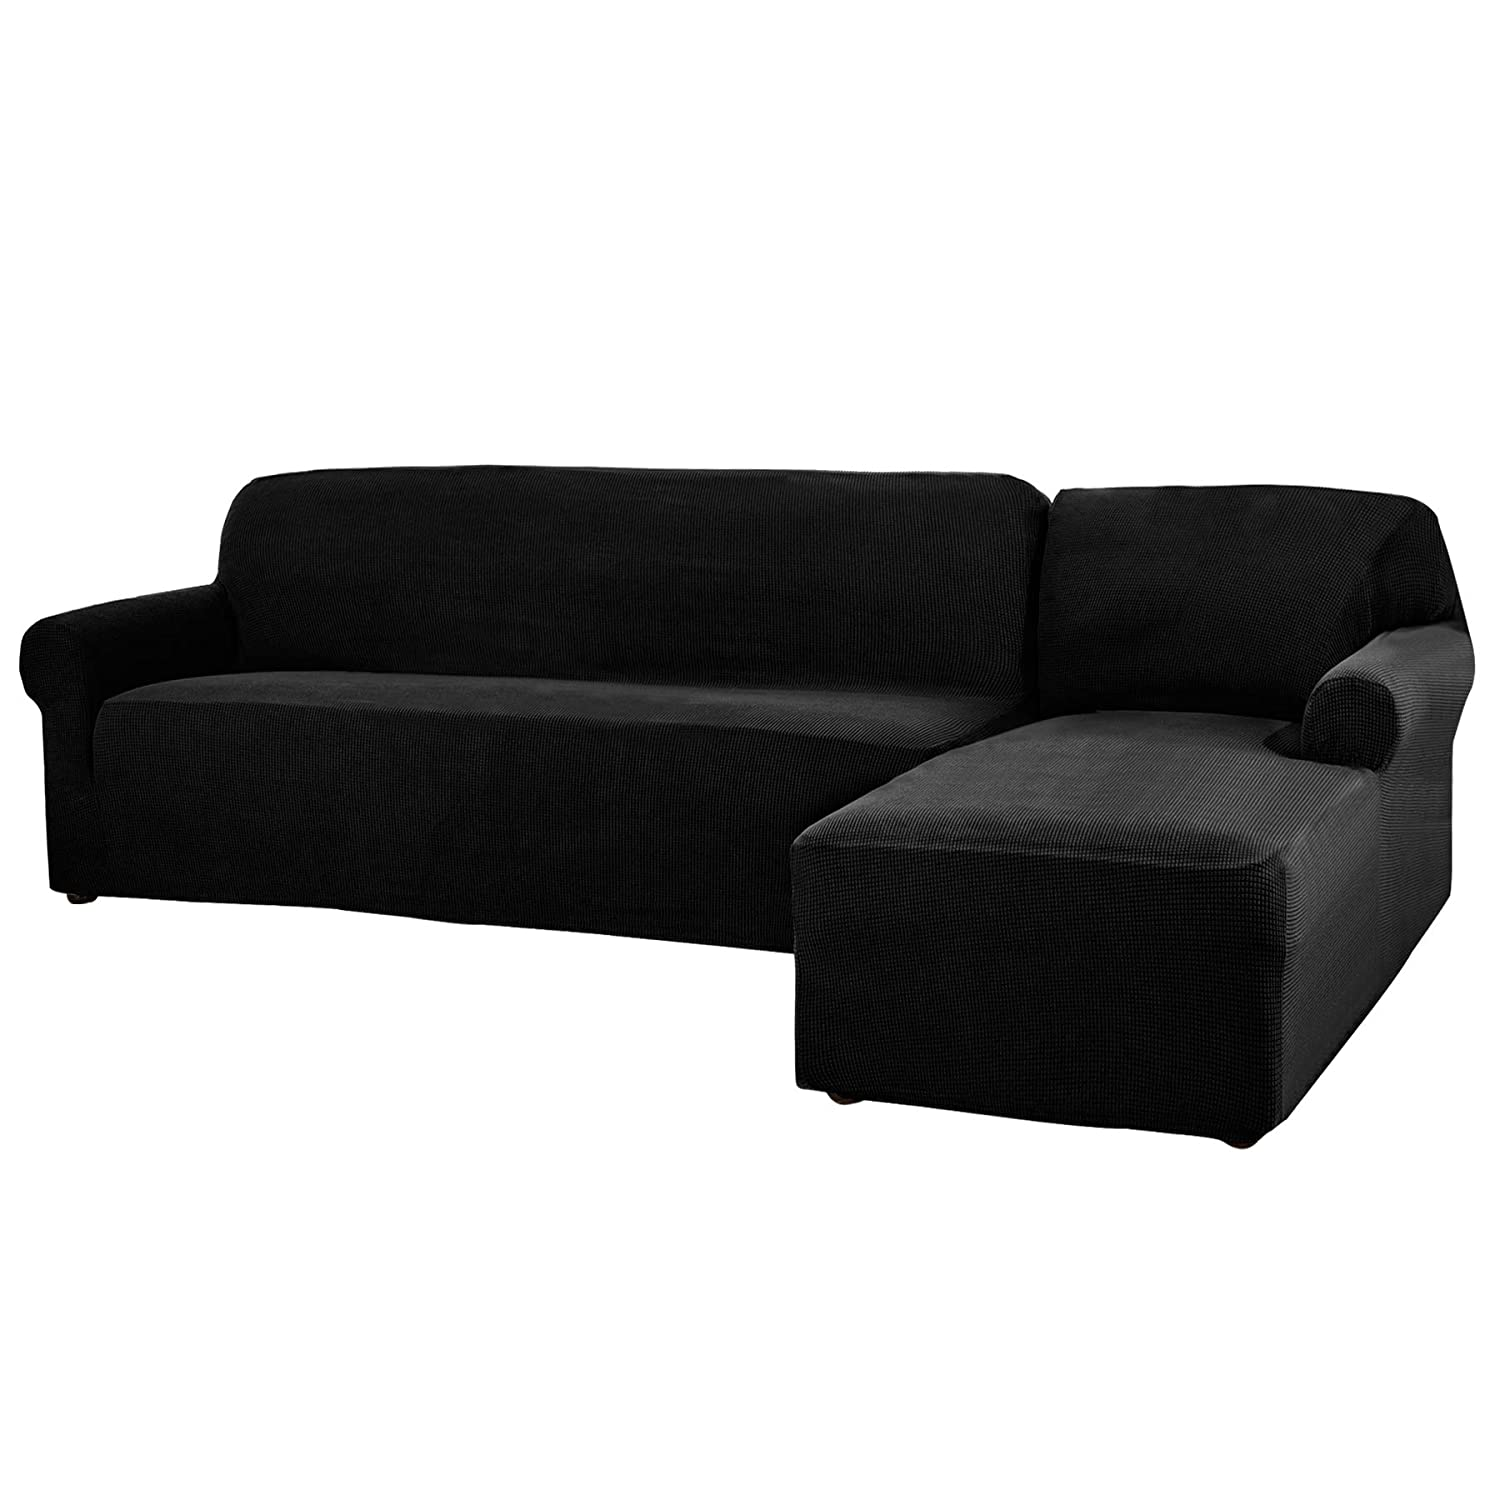 CHUN YI 2 Pieces L-Shaped 3 Seats Jacquard Polyester Stretch Fabric Sectional Sofa Slipcovers for Living Room (Right Chaise(3 Seats), Black)